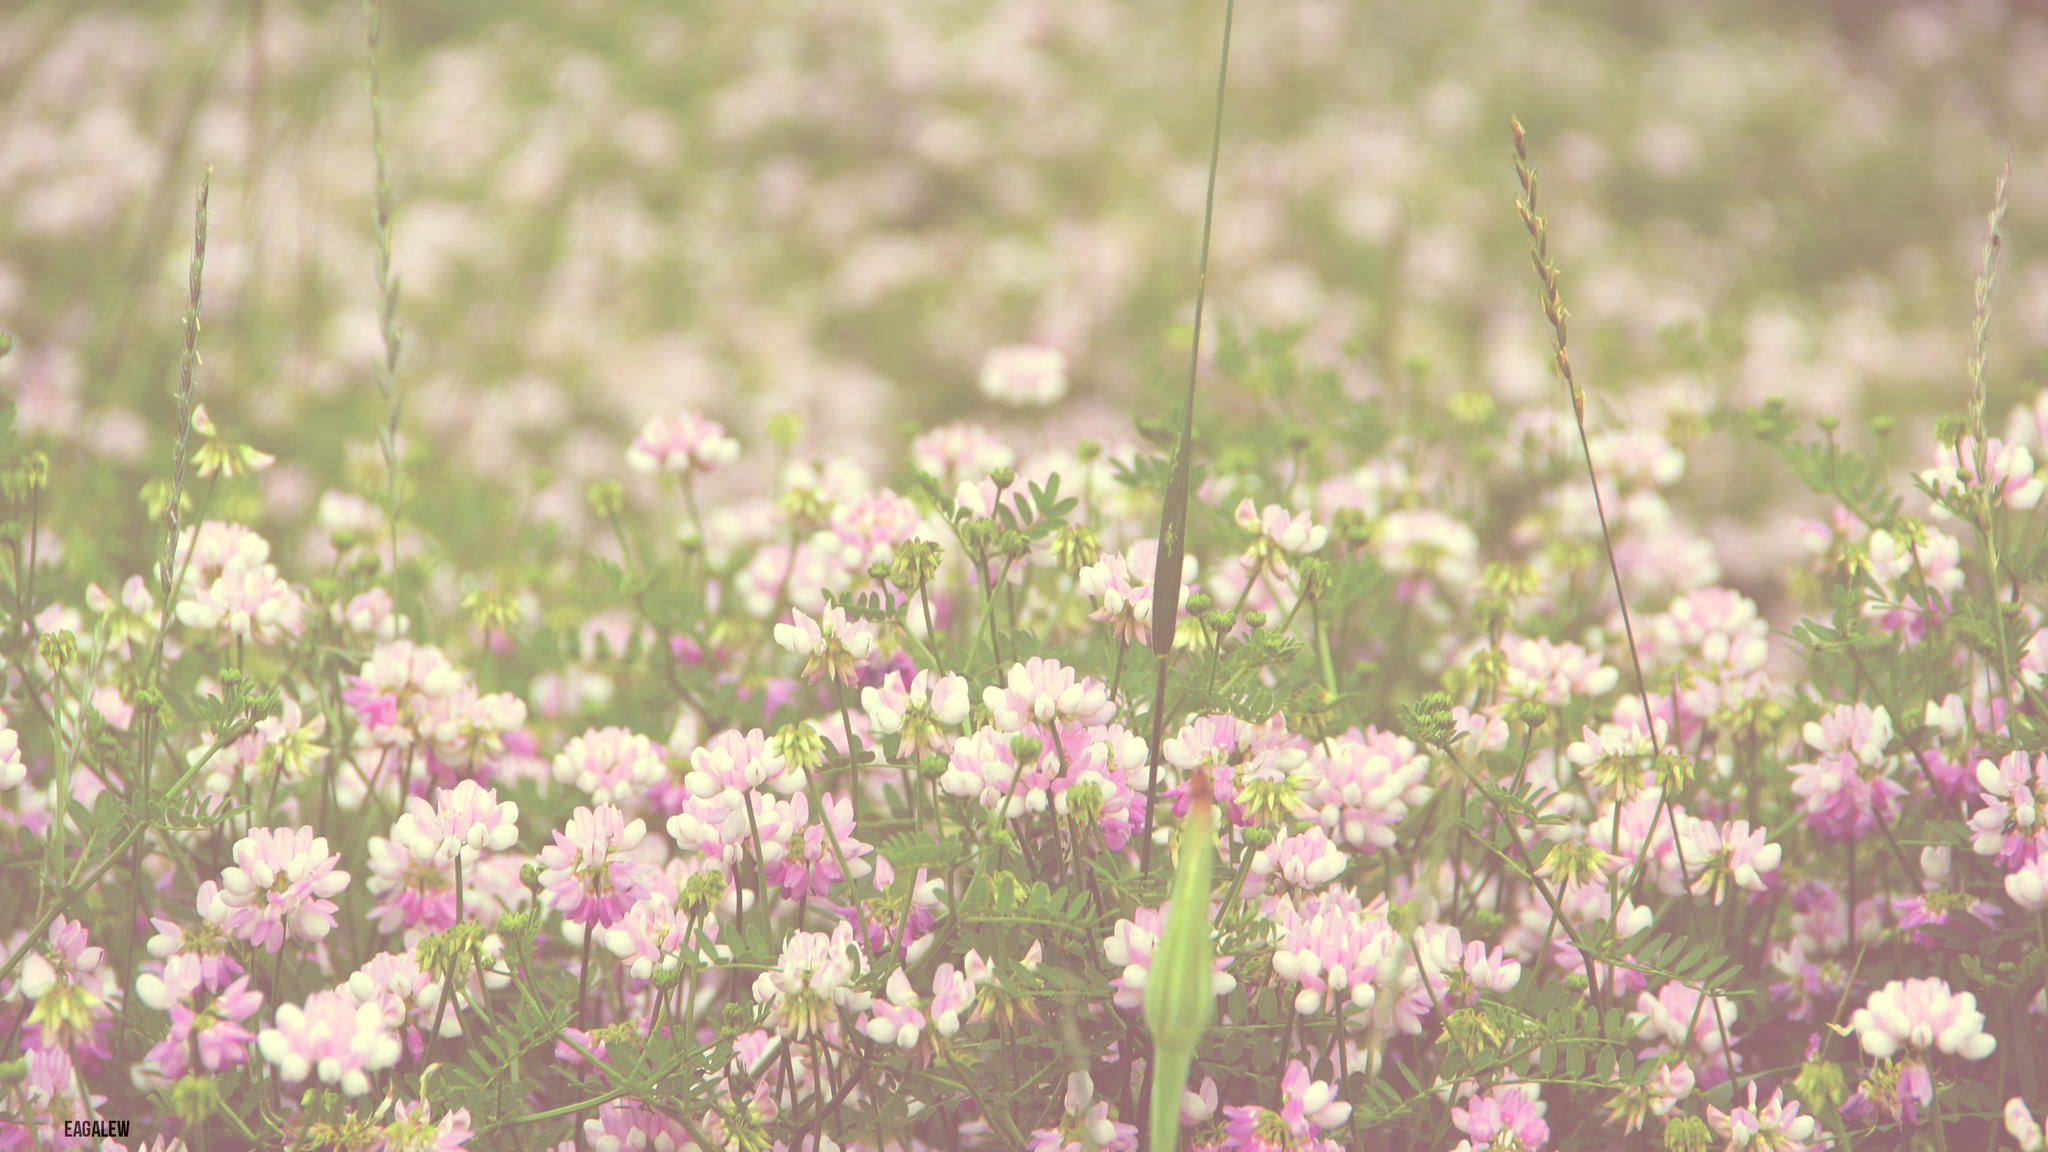 Vintage Flower Field Photography Hd Images 3 HD Wallpapers